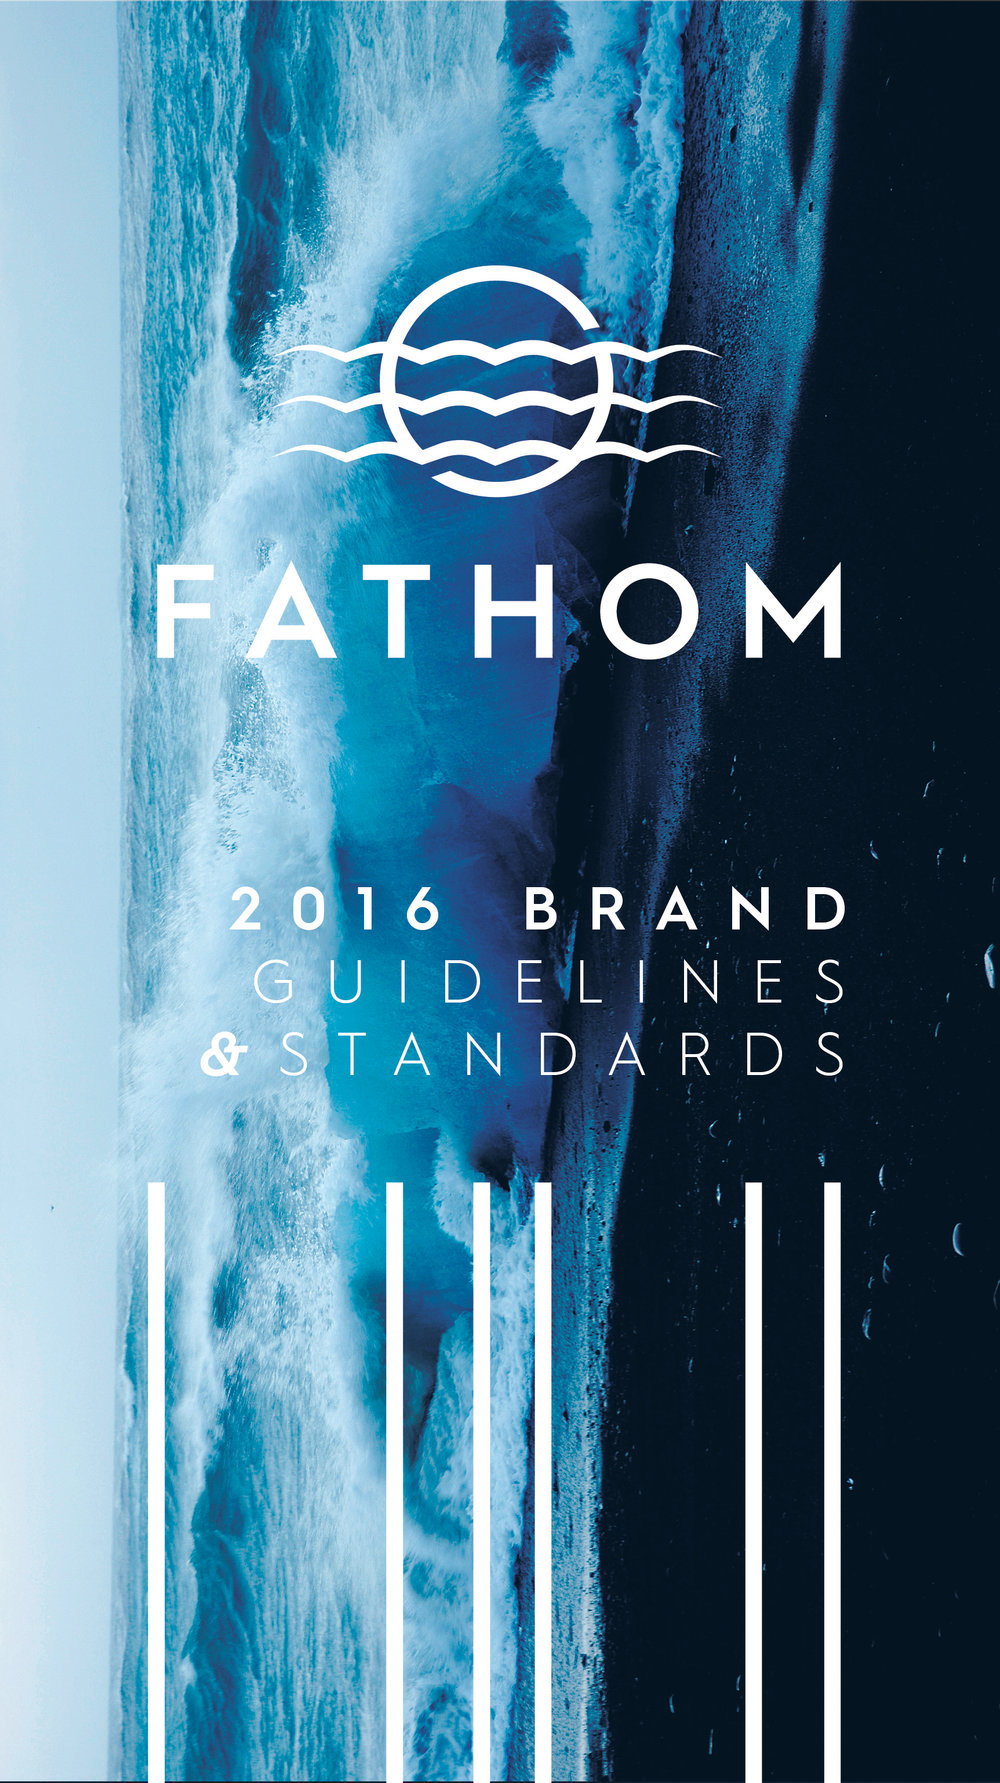 Fathom - For this branding project subject, I was given water so I chose to design around a fictional, commercialized submarine. Included are the mission statement, brand pillars, logo usage, photography usage, colors available to use, stationery and collateral for the brand. I also created a brochure to be given to possible clients regarding more information about the commercialized subs, which was a 16 page, saddle stiched booklet.